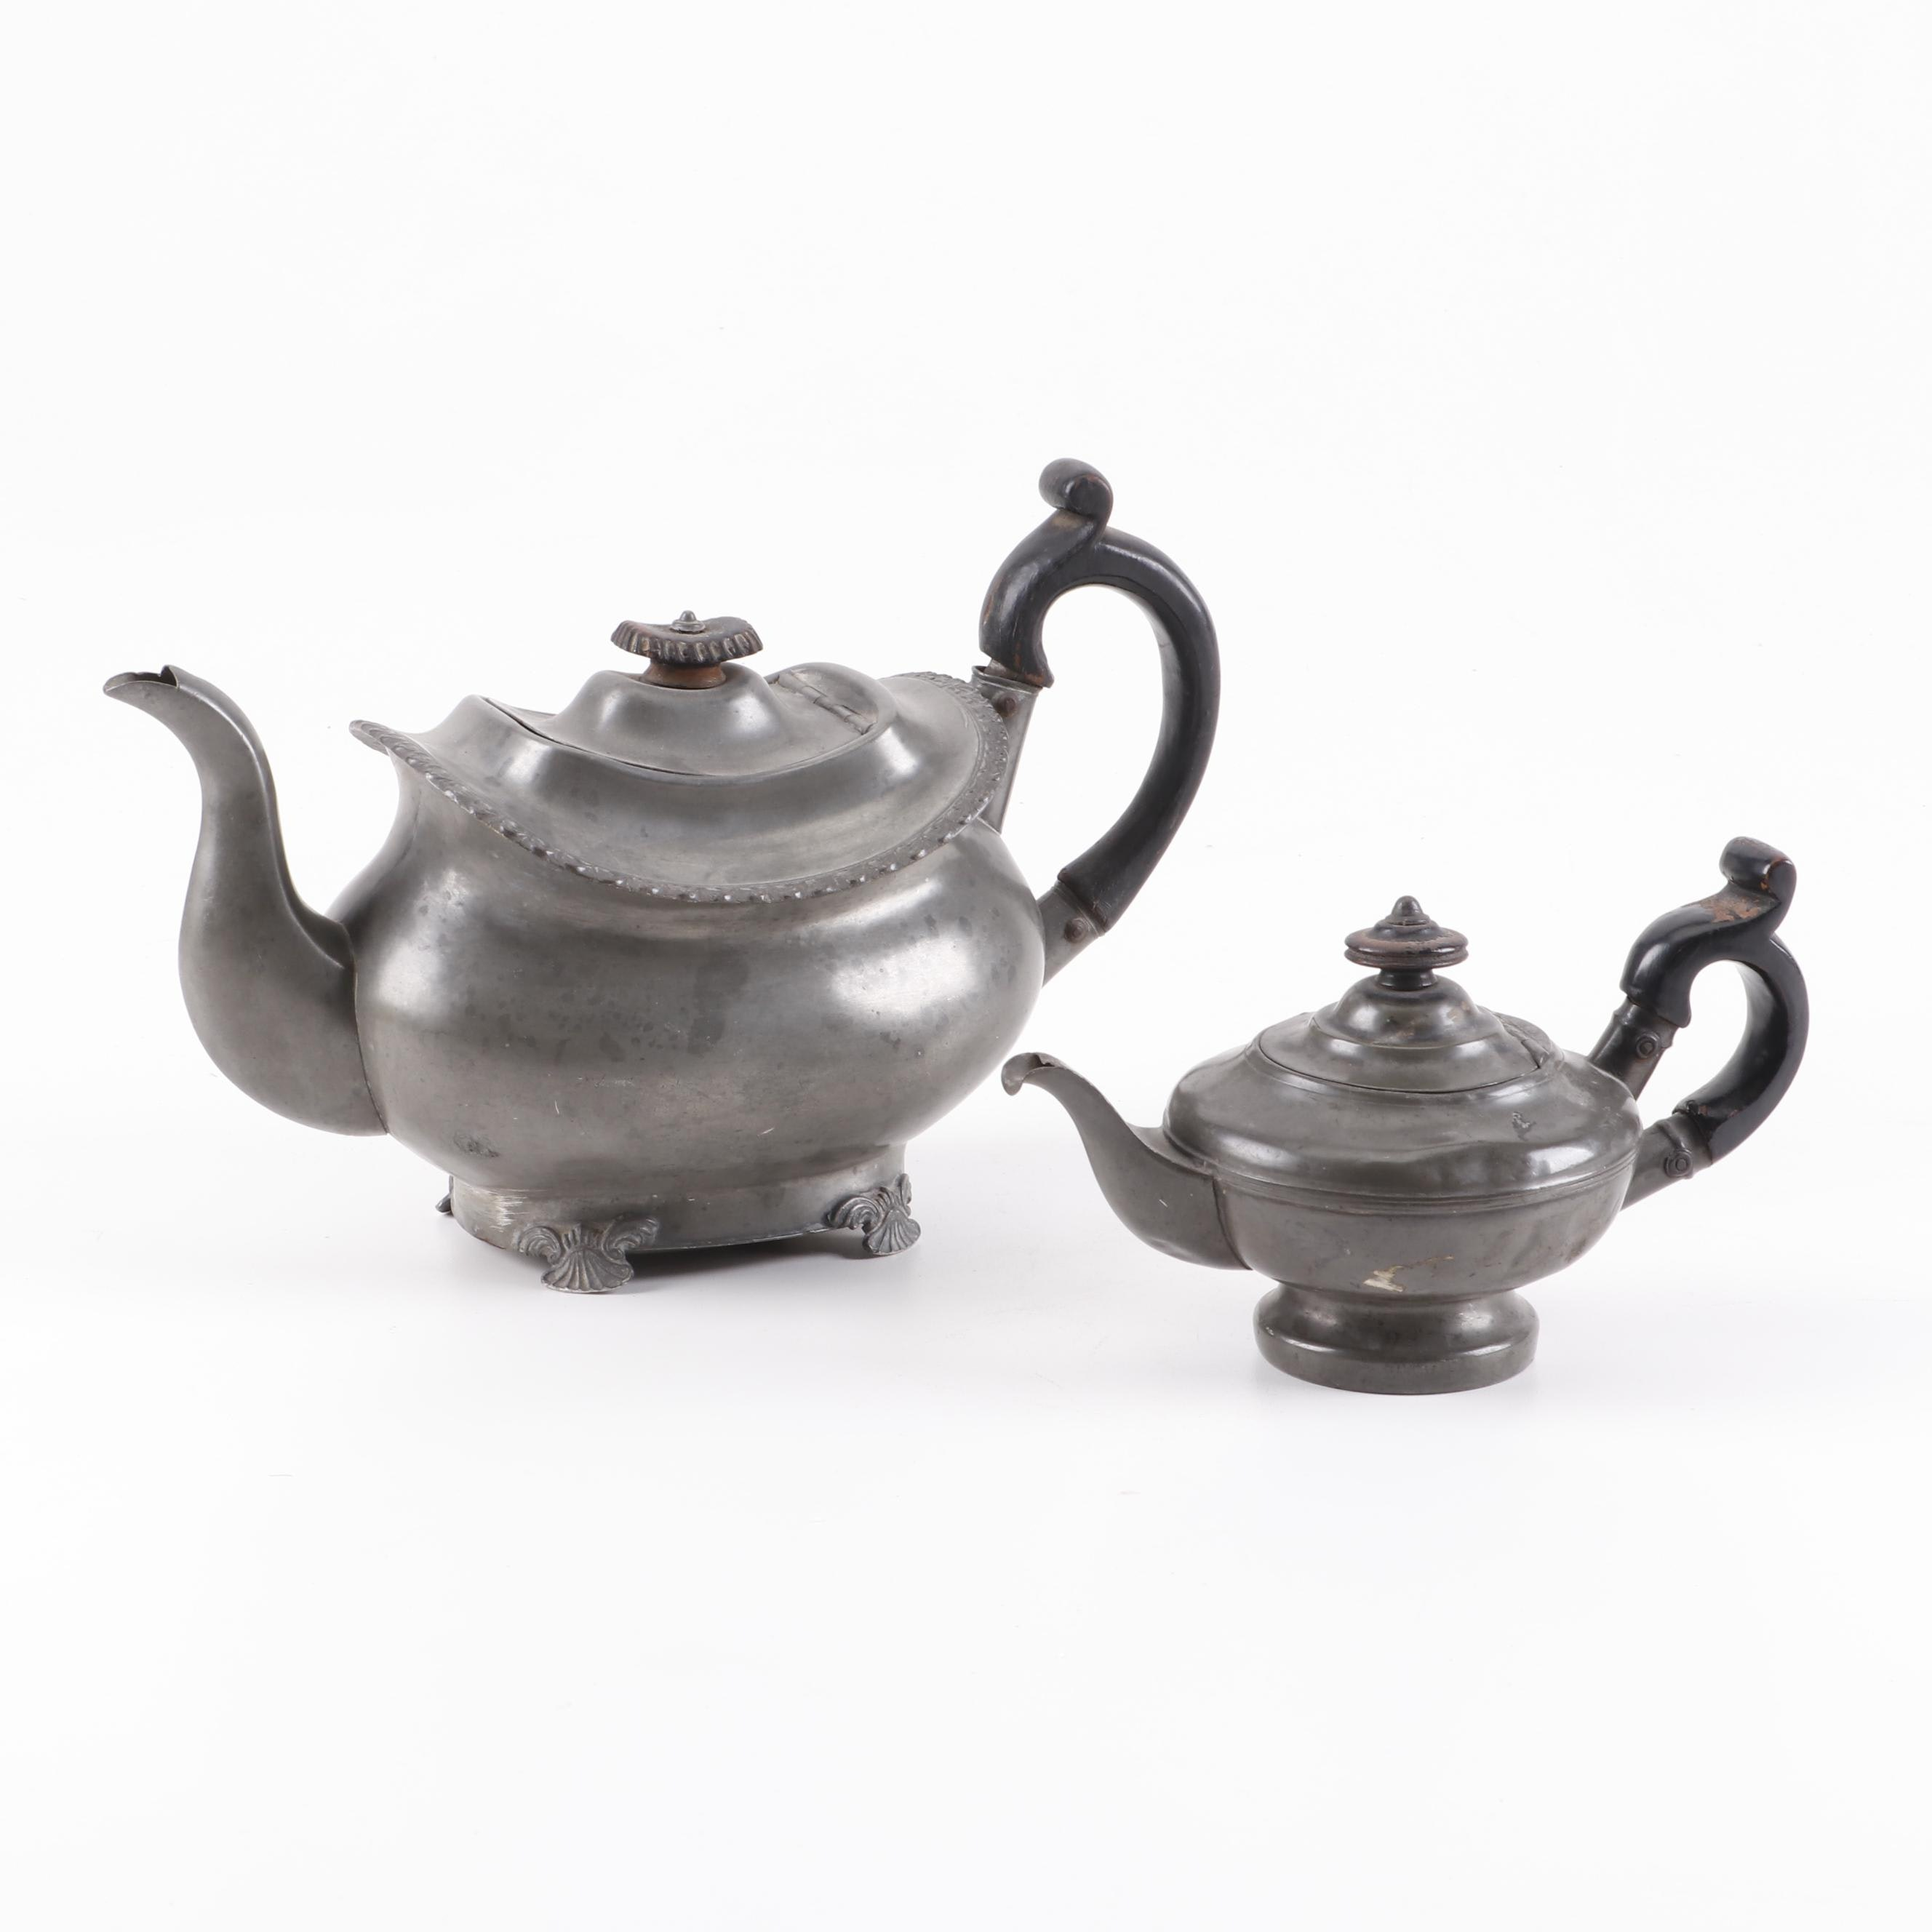 Antique Pewter Tea Pots